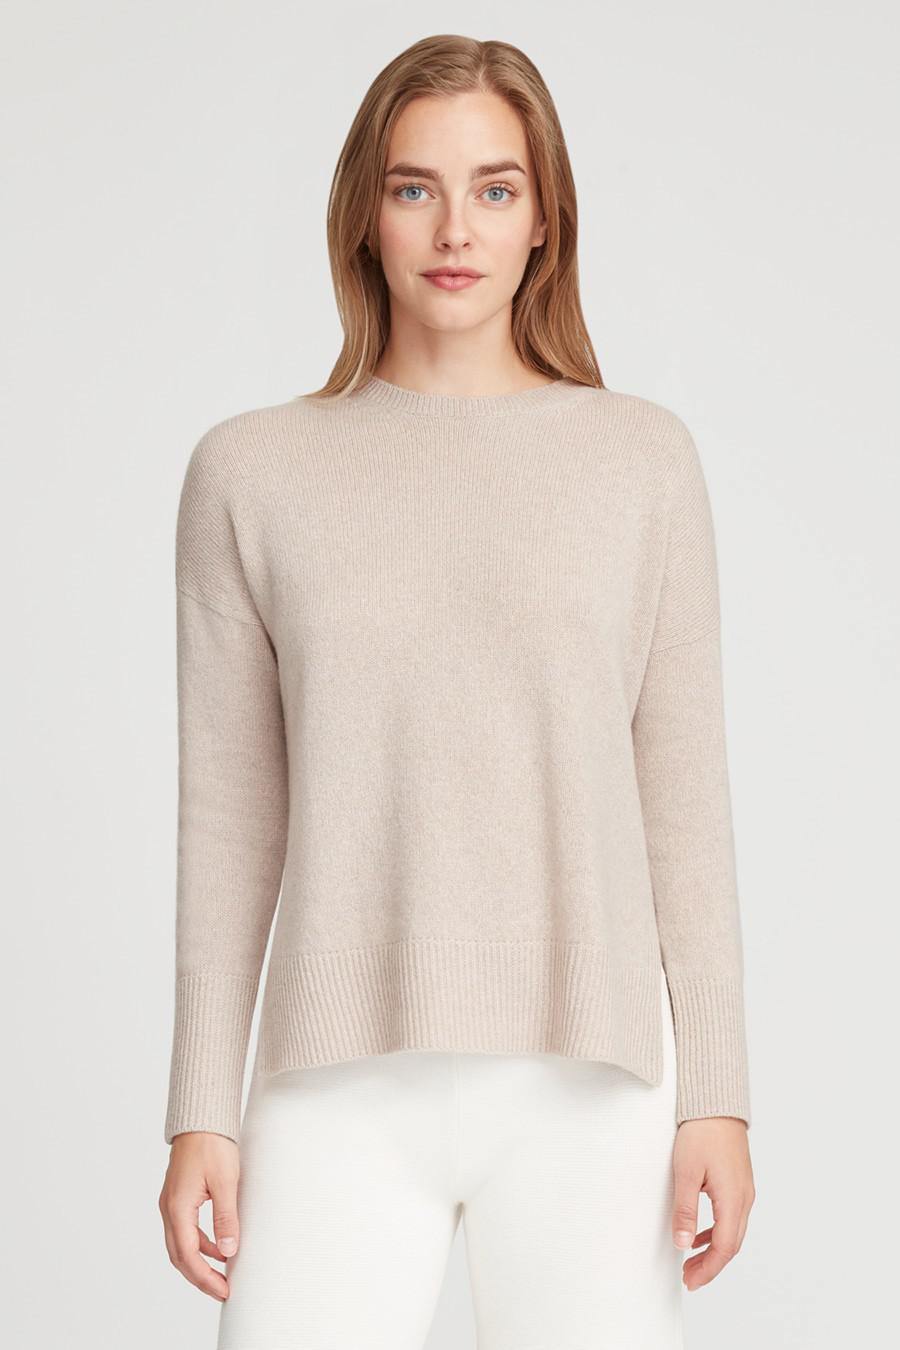 Women's Recycled Crewneck Sweater in Beige | Size: 1